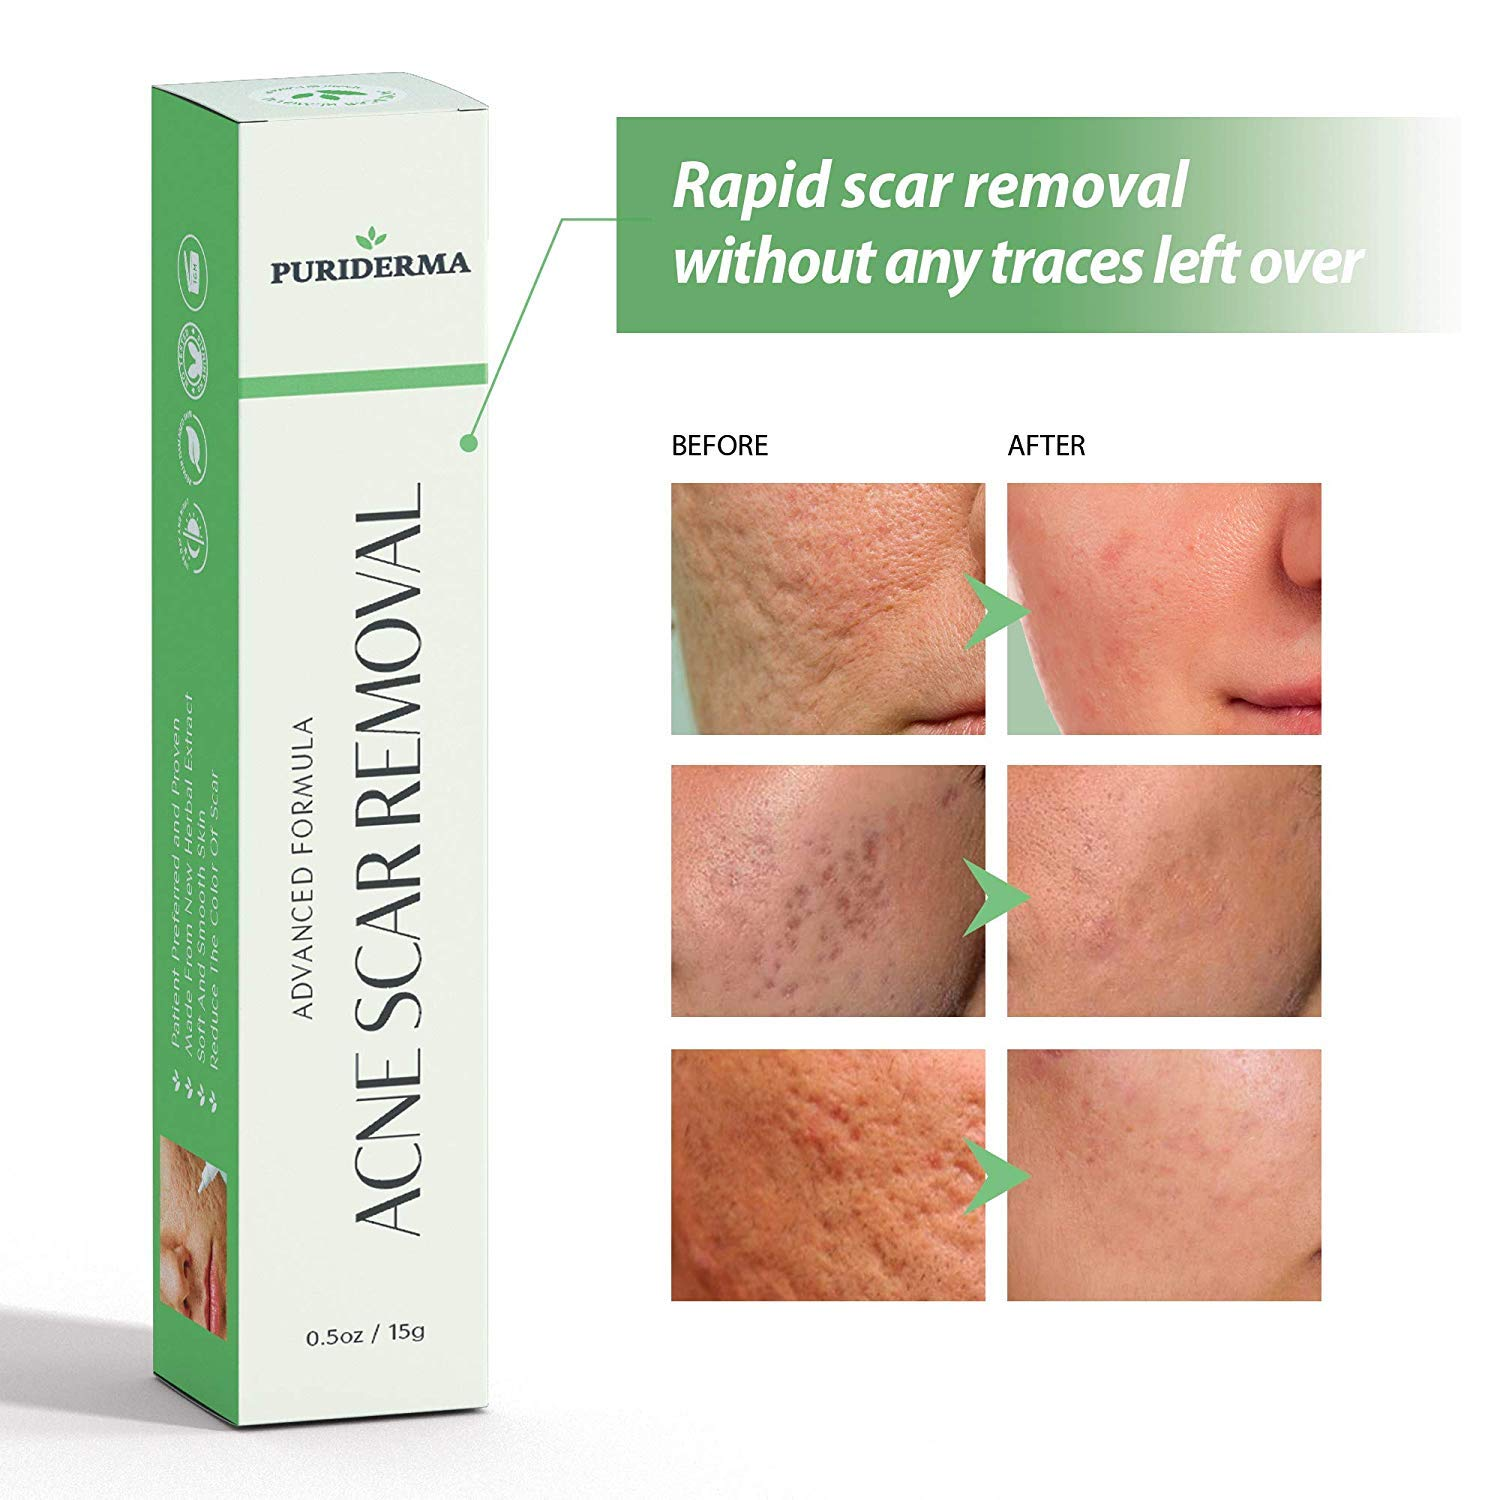 Puriderma Acne Scar Removal Cream Treatment For Face Remove And